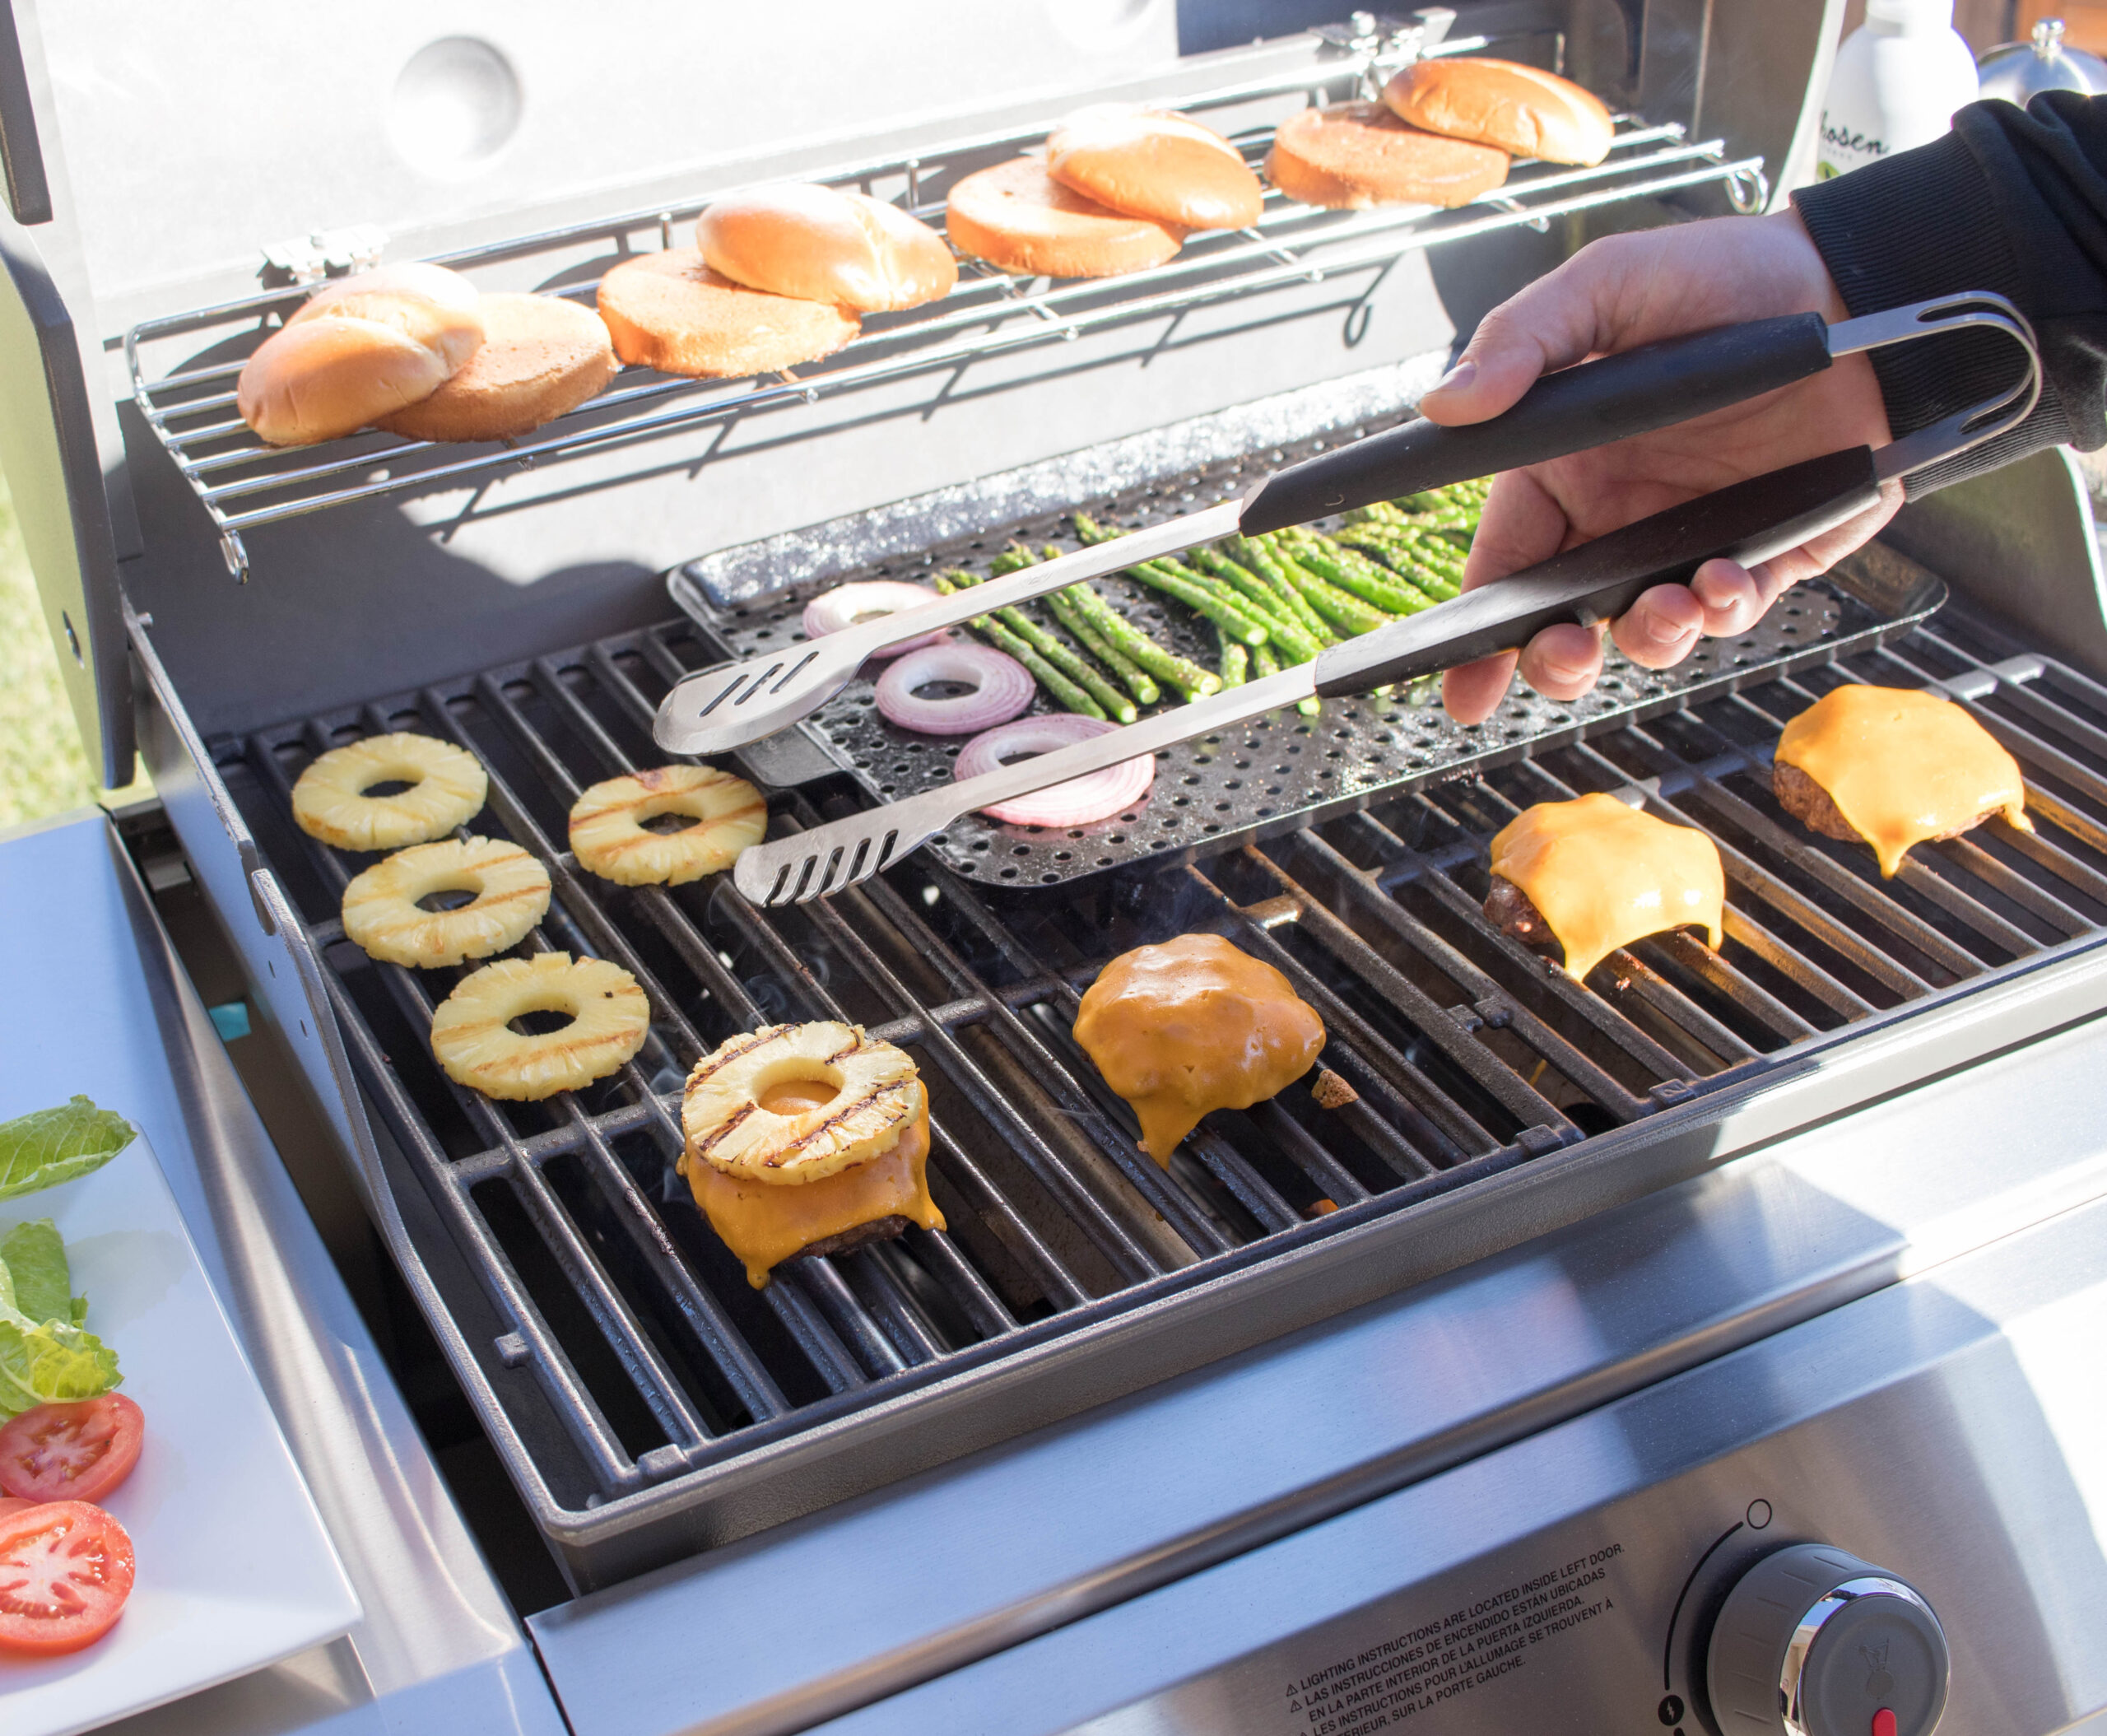 at home tailgating food ideas #tailgatingathome #grilling #familyactivities